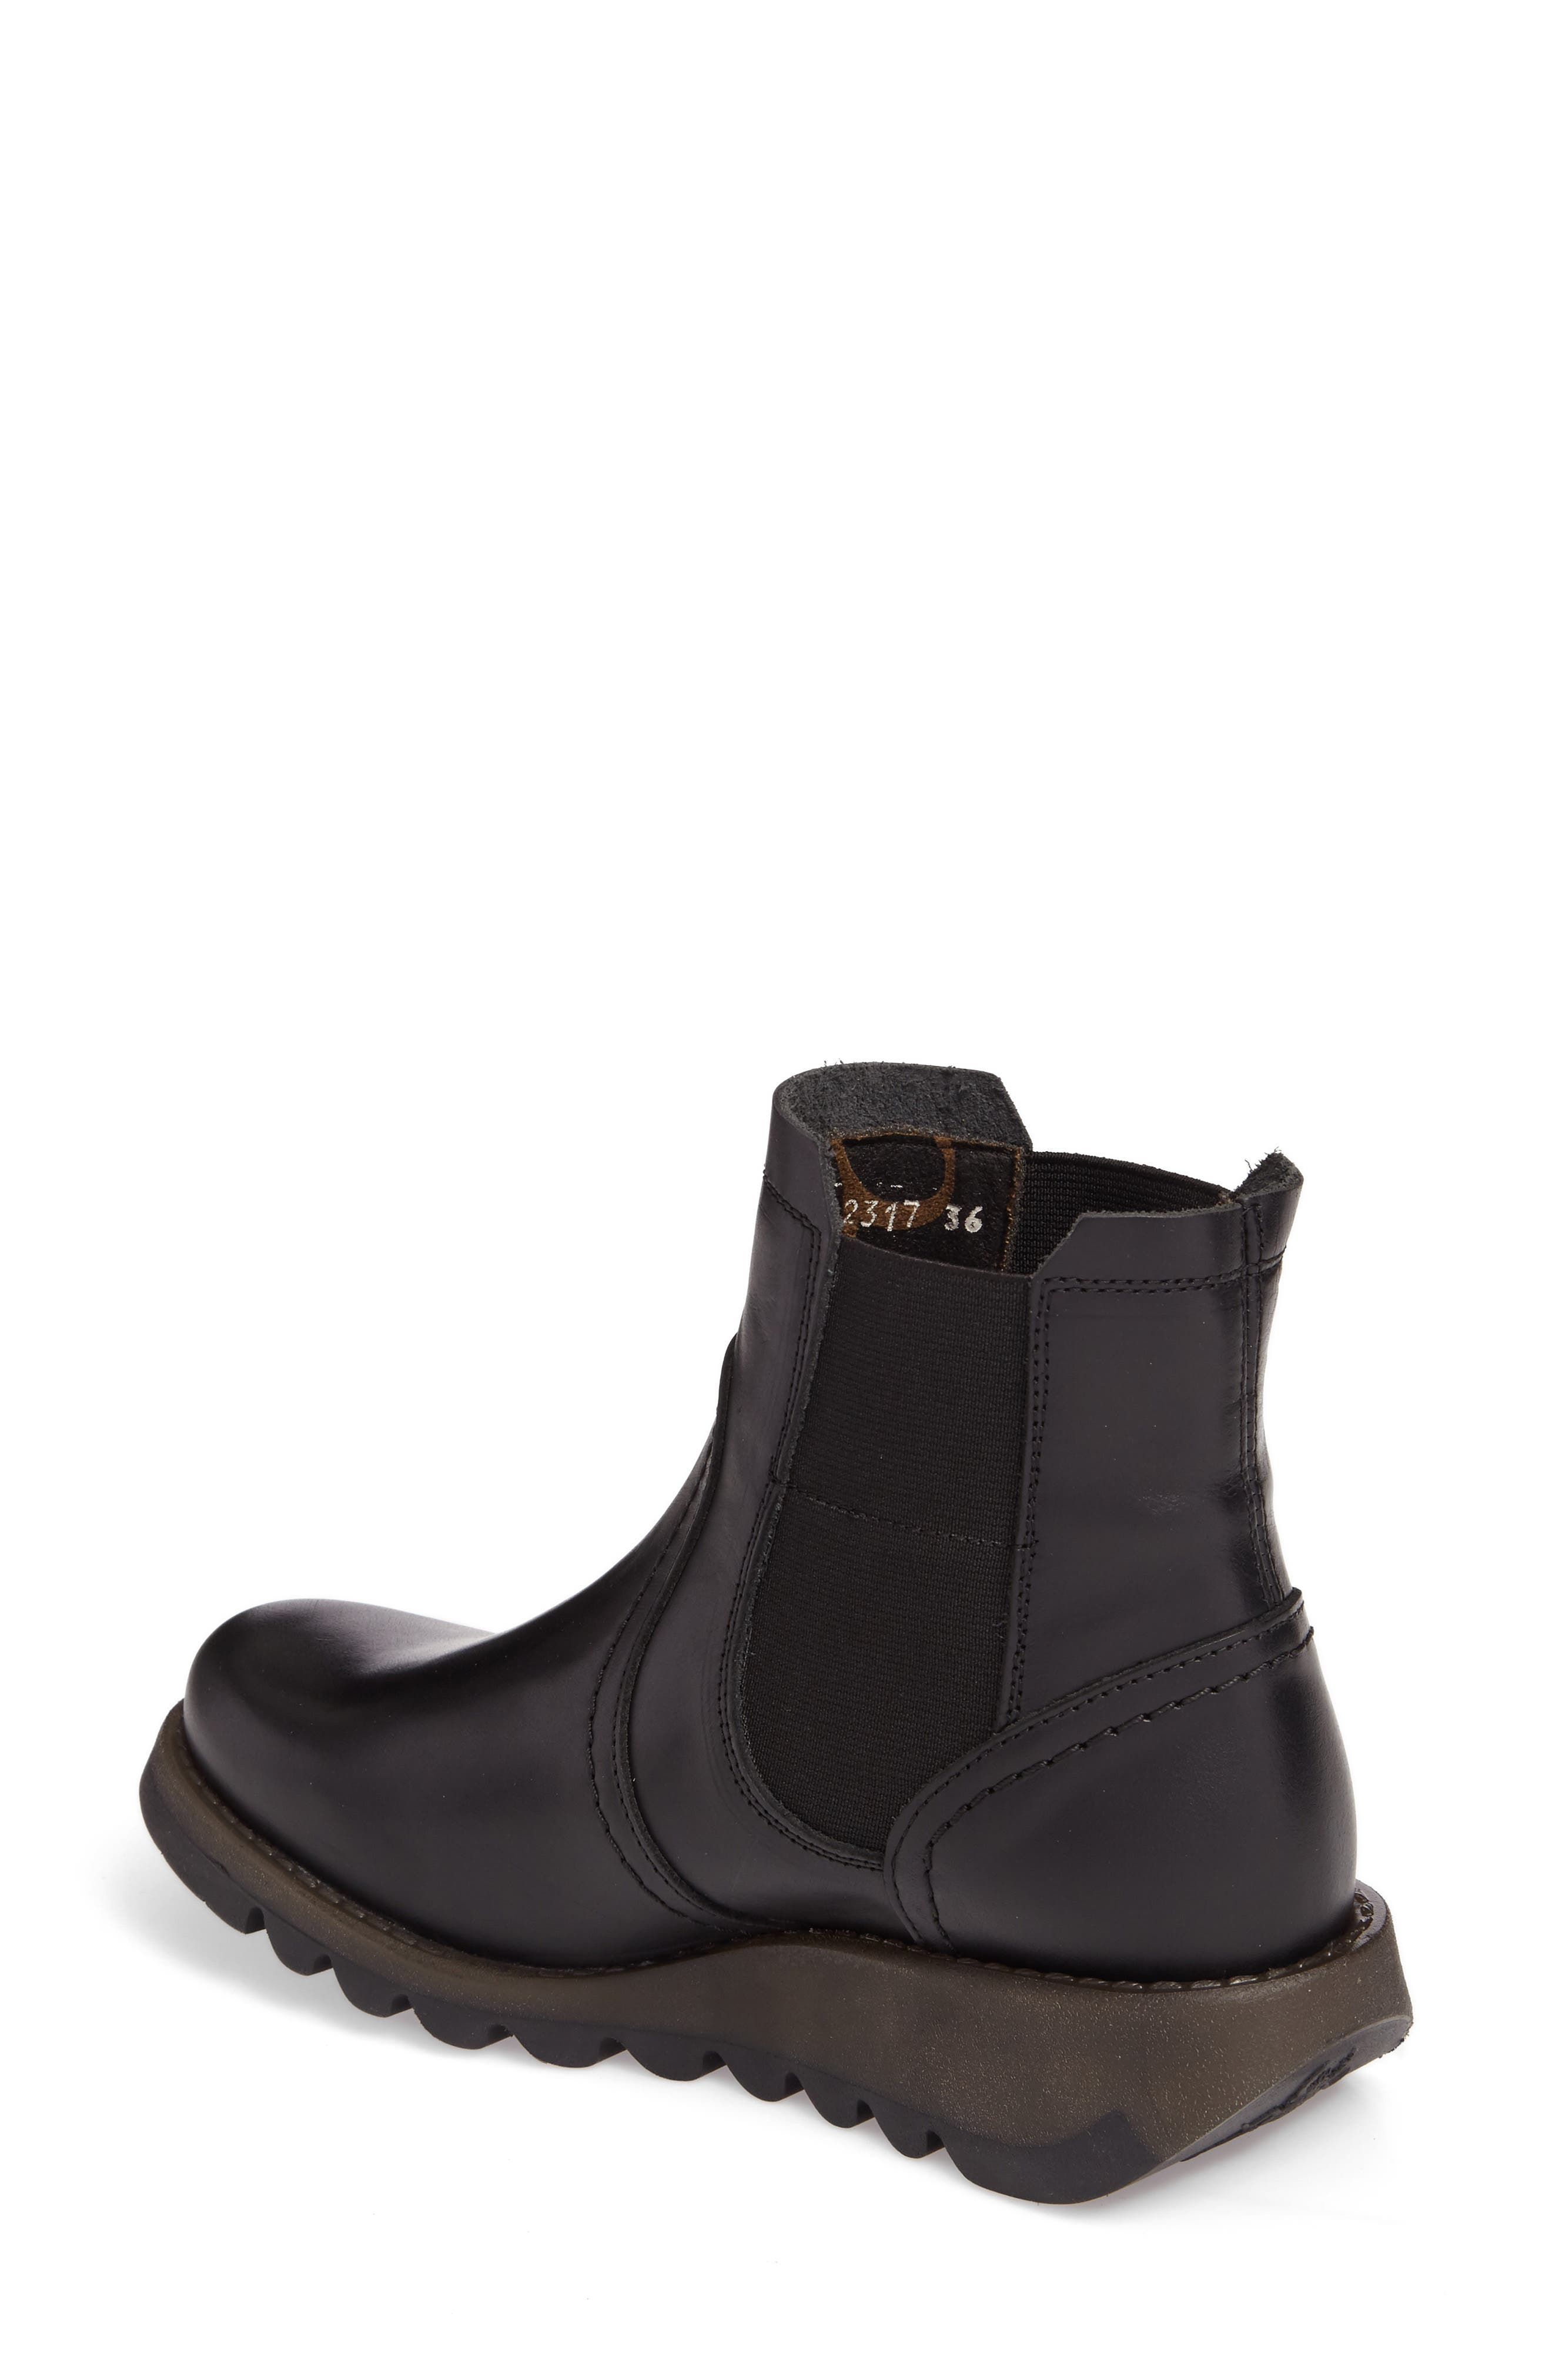 Scon Waterproof Gore-Tex<sup>®</sup> Chelsea Boot,                             Alternate thumbnail 2, color,                             BLACK LEATHER